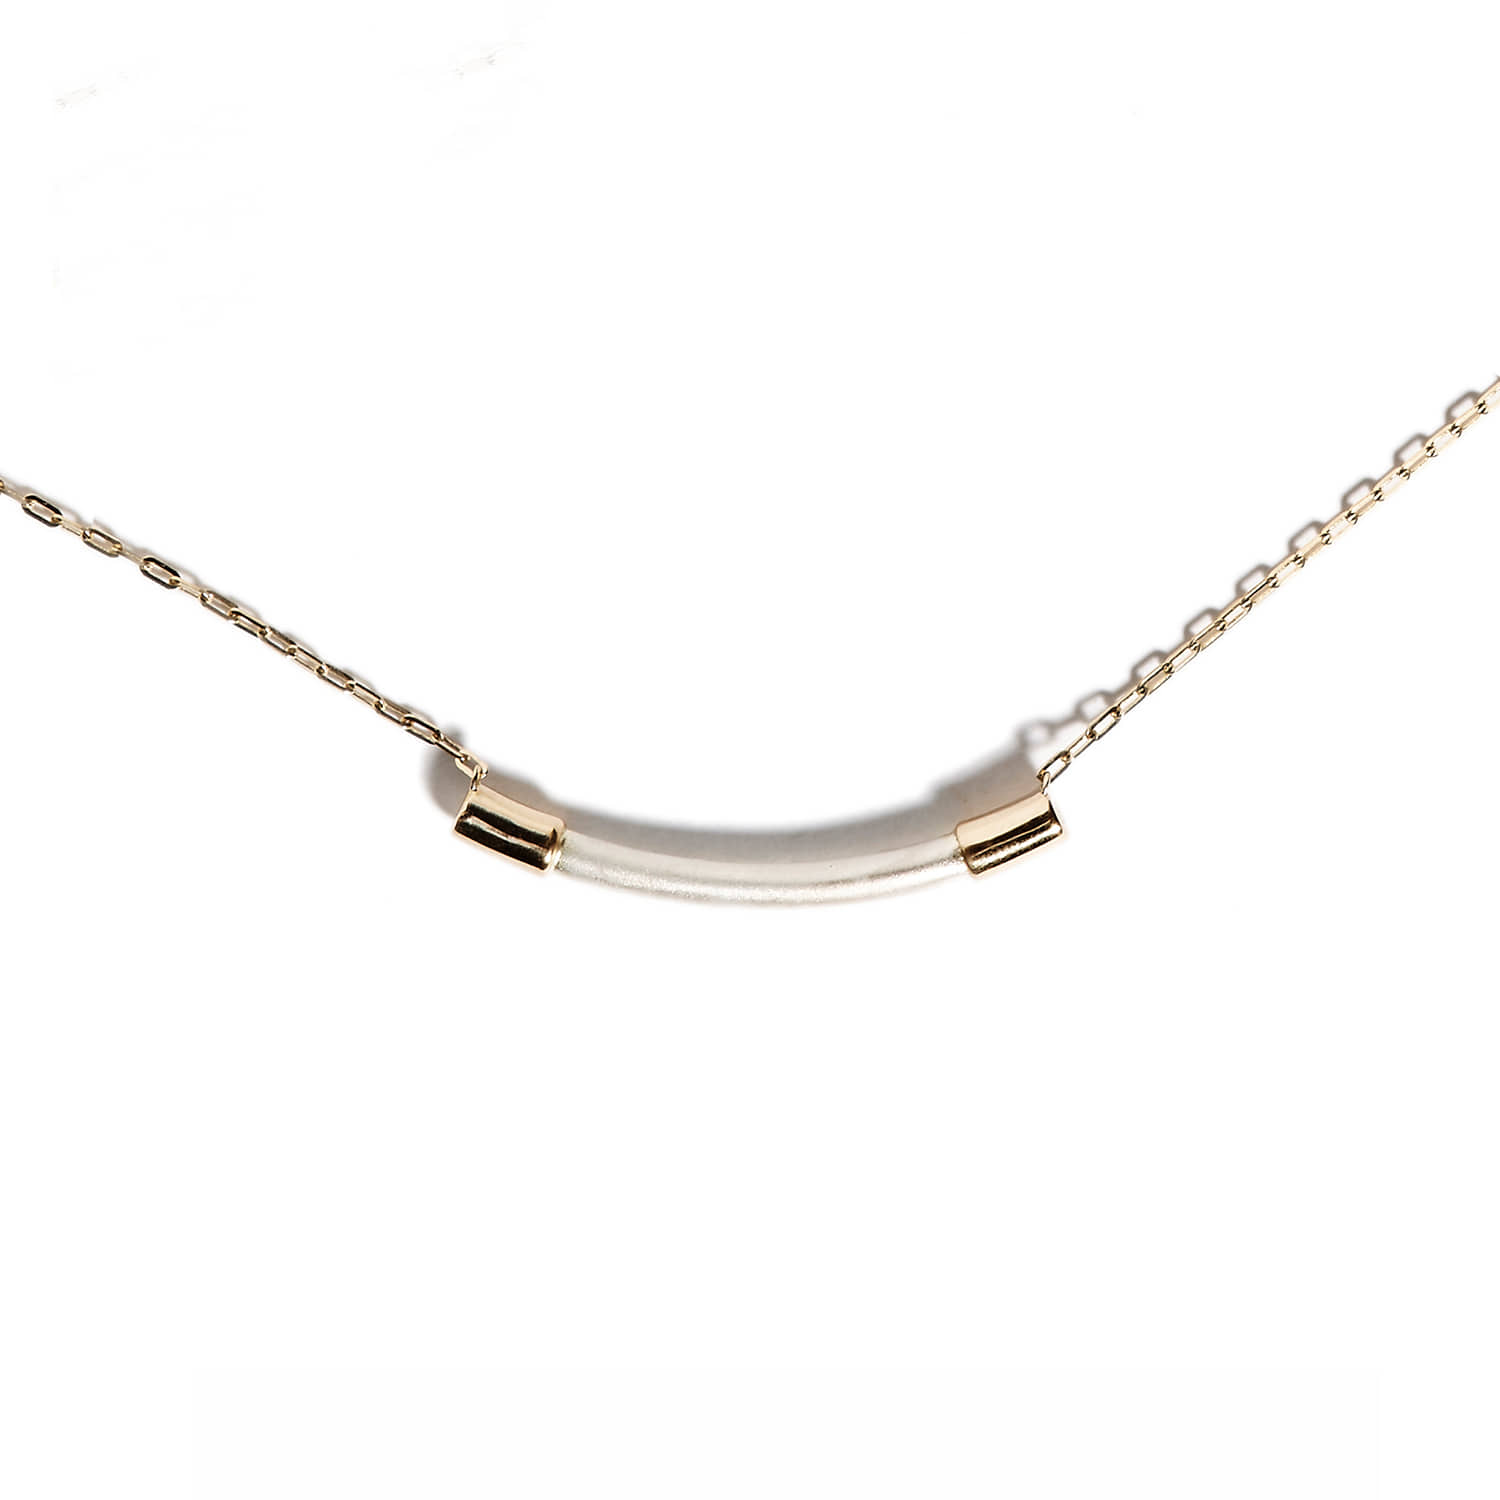 NS_Gold chain necklace